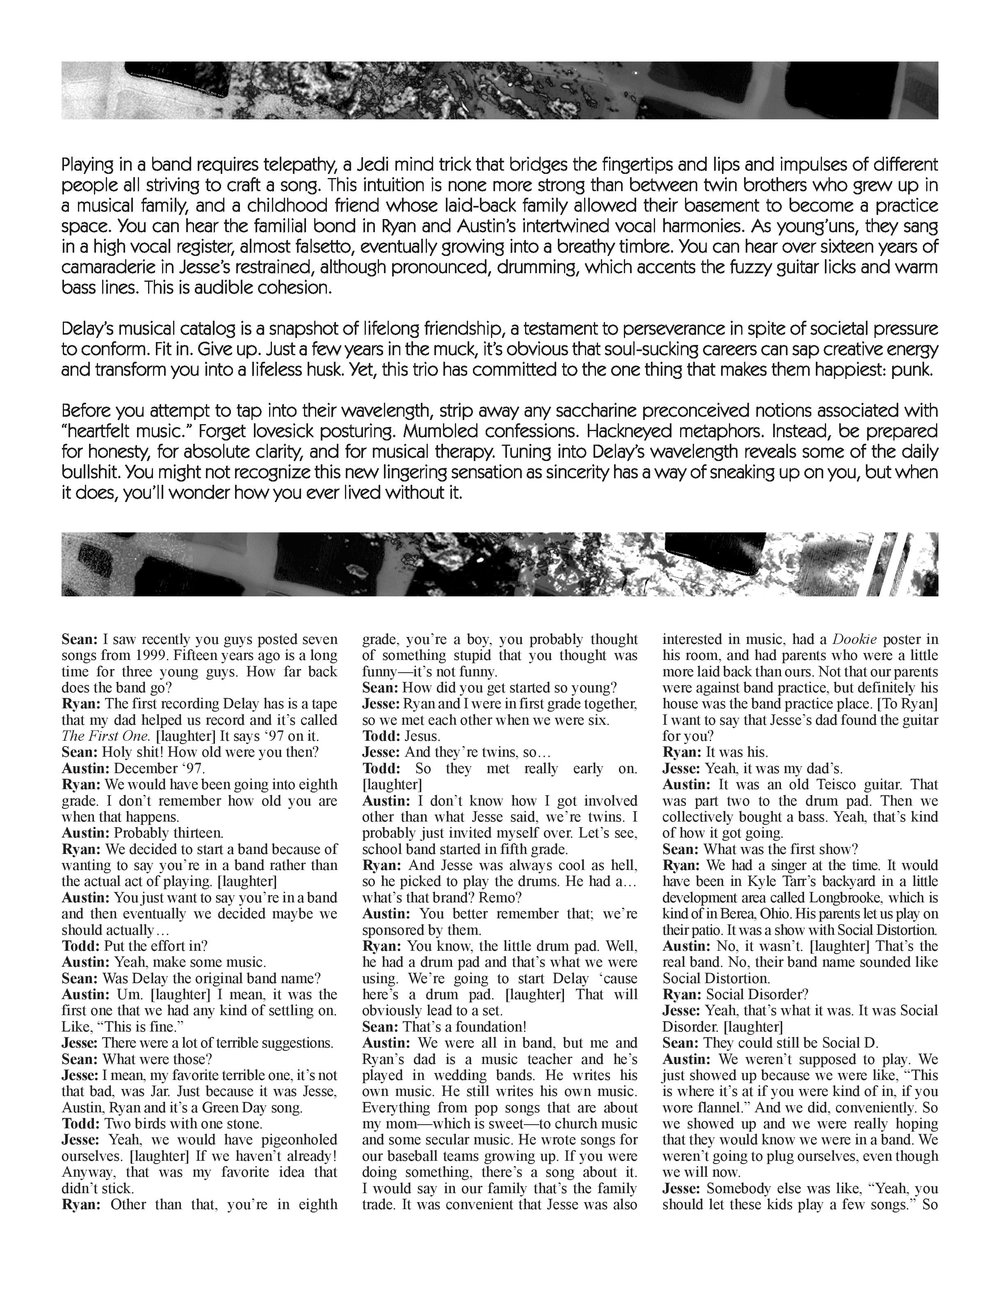 delay_interview-page-003.jpg